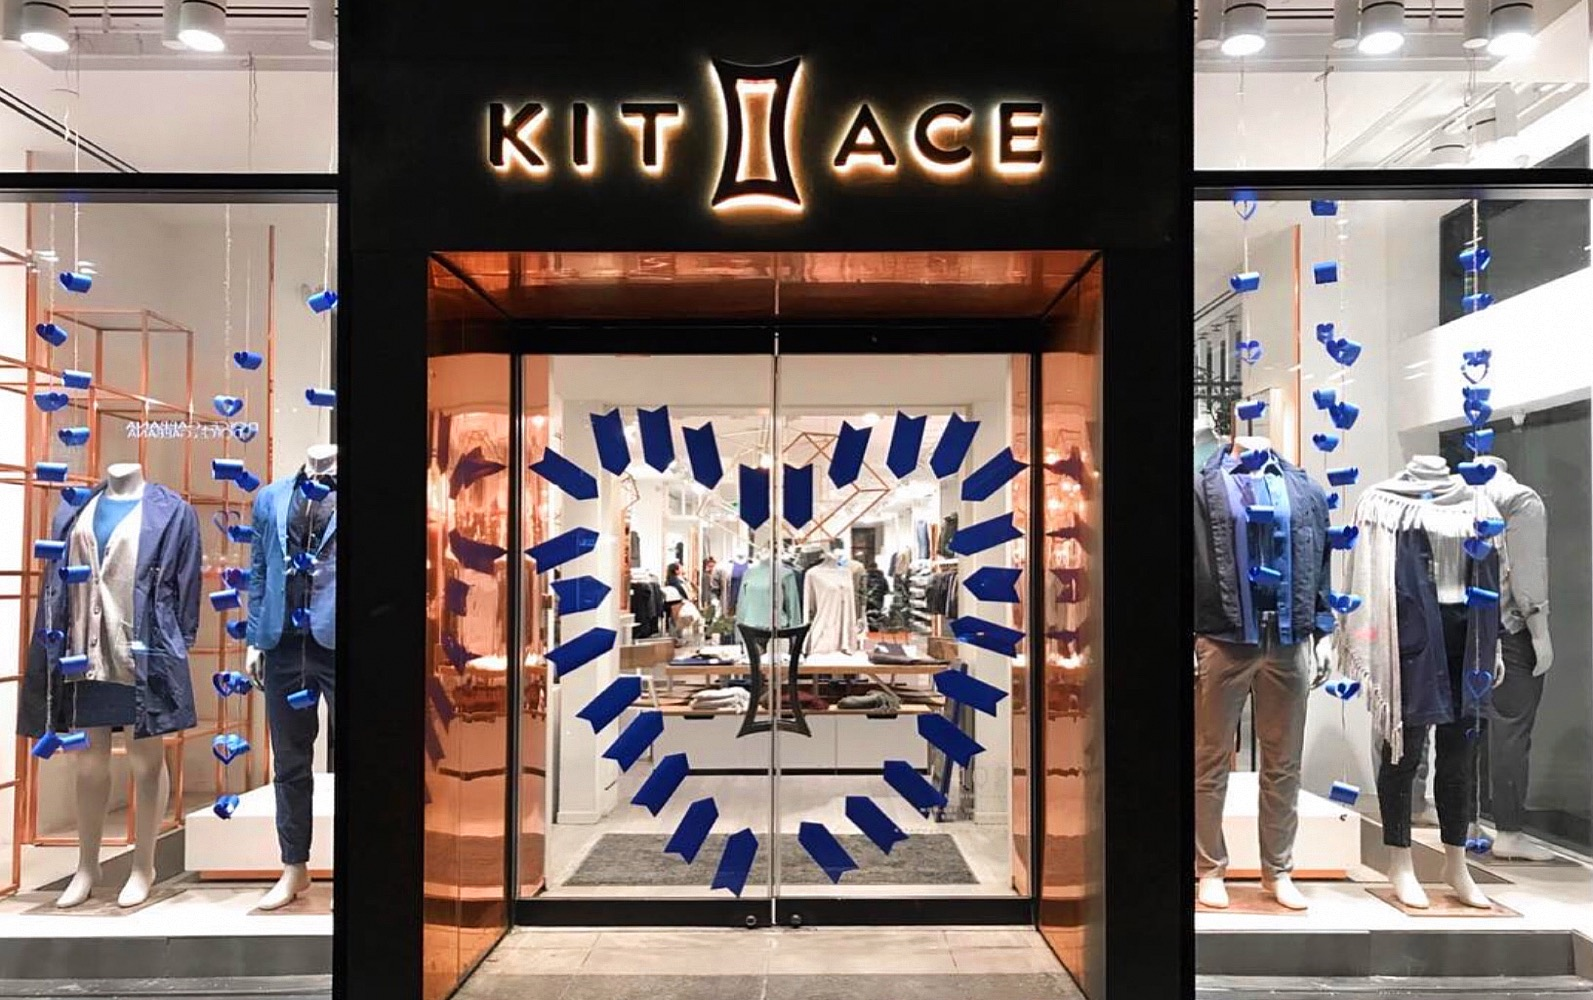 The entrance to Kit and Ace